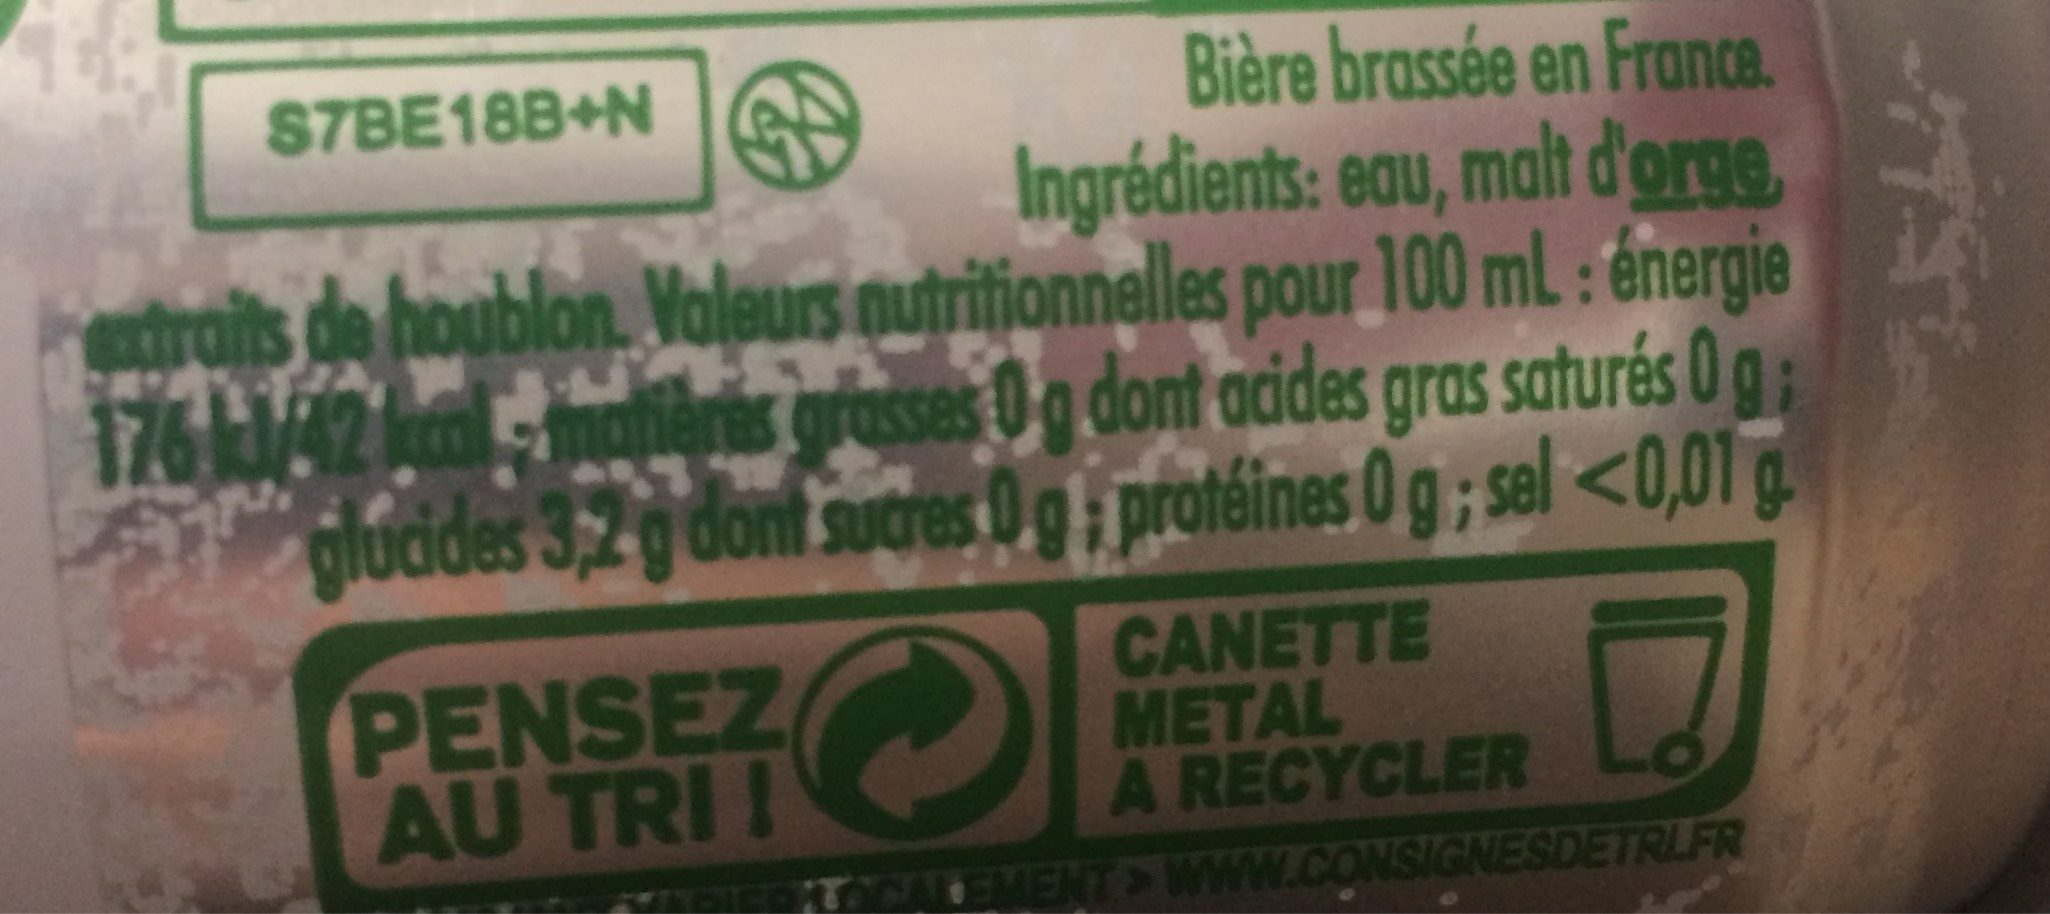 Heineken-beer-330ml-france - Nutrition facts